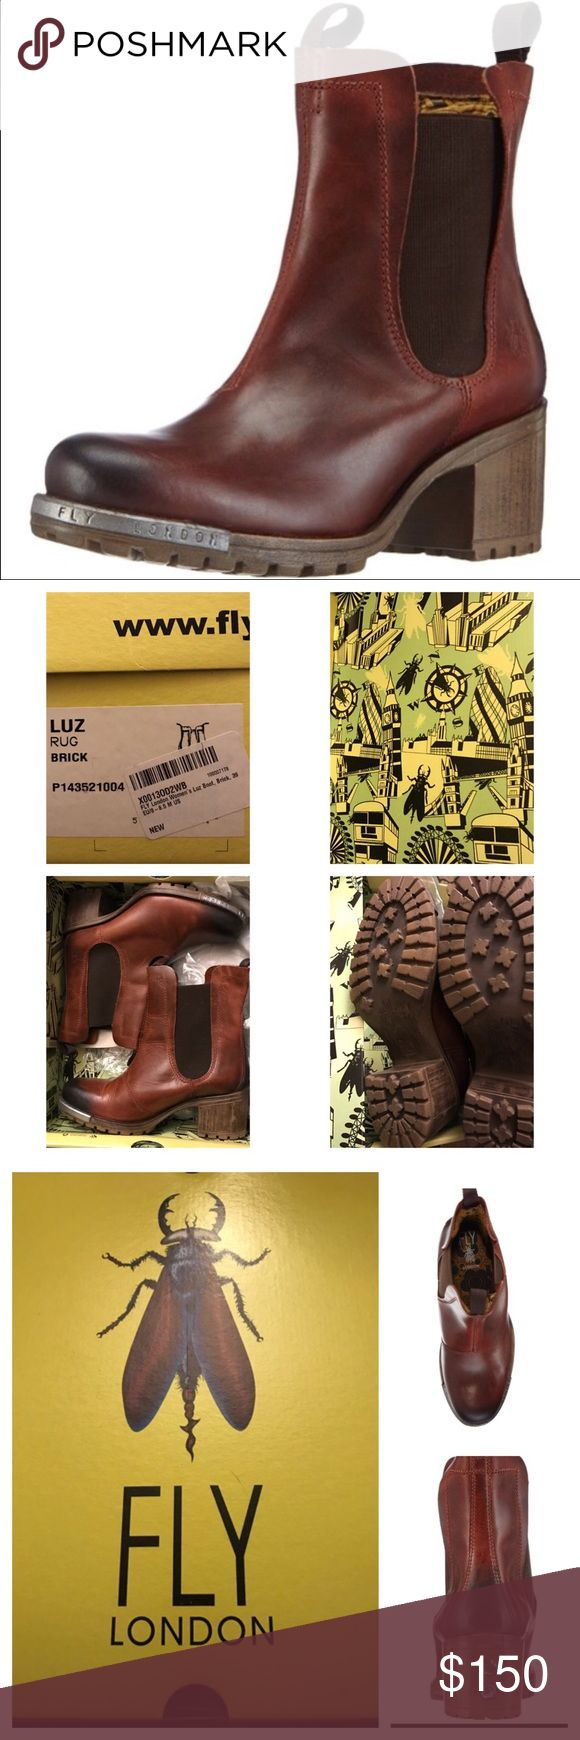 Fly London Luz Boots in Brick 39 Fly London Luz Rug Boots in Brick (Dark reddish-brown) size 39 or US 8-8.5. NEW IN THE BOX! Fly London Shoes